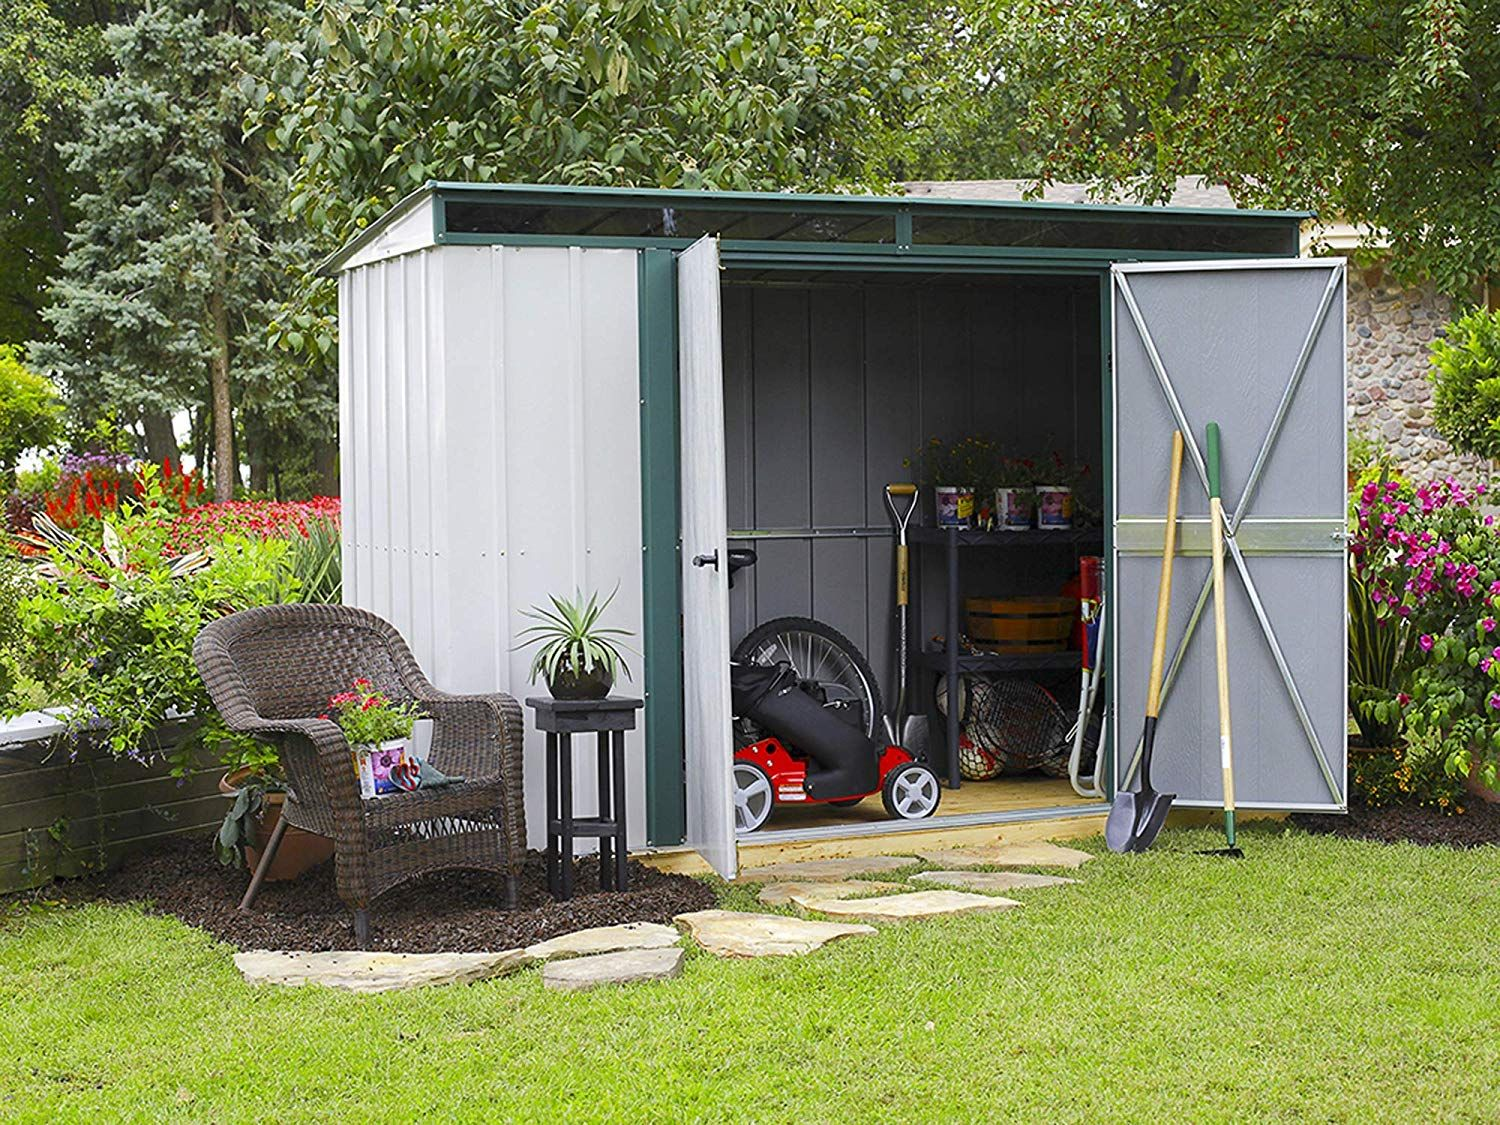 Amazon Com Arrow 10 X 4 Euro Lite Shed Eggshell With Green Trim And Pent Roof Steel Storage Shed Gat Building A Shed Shed Landscaping Steel Storage Sheds